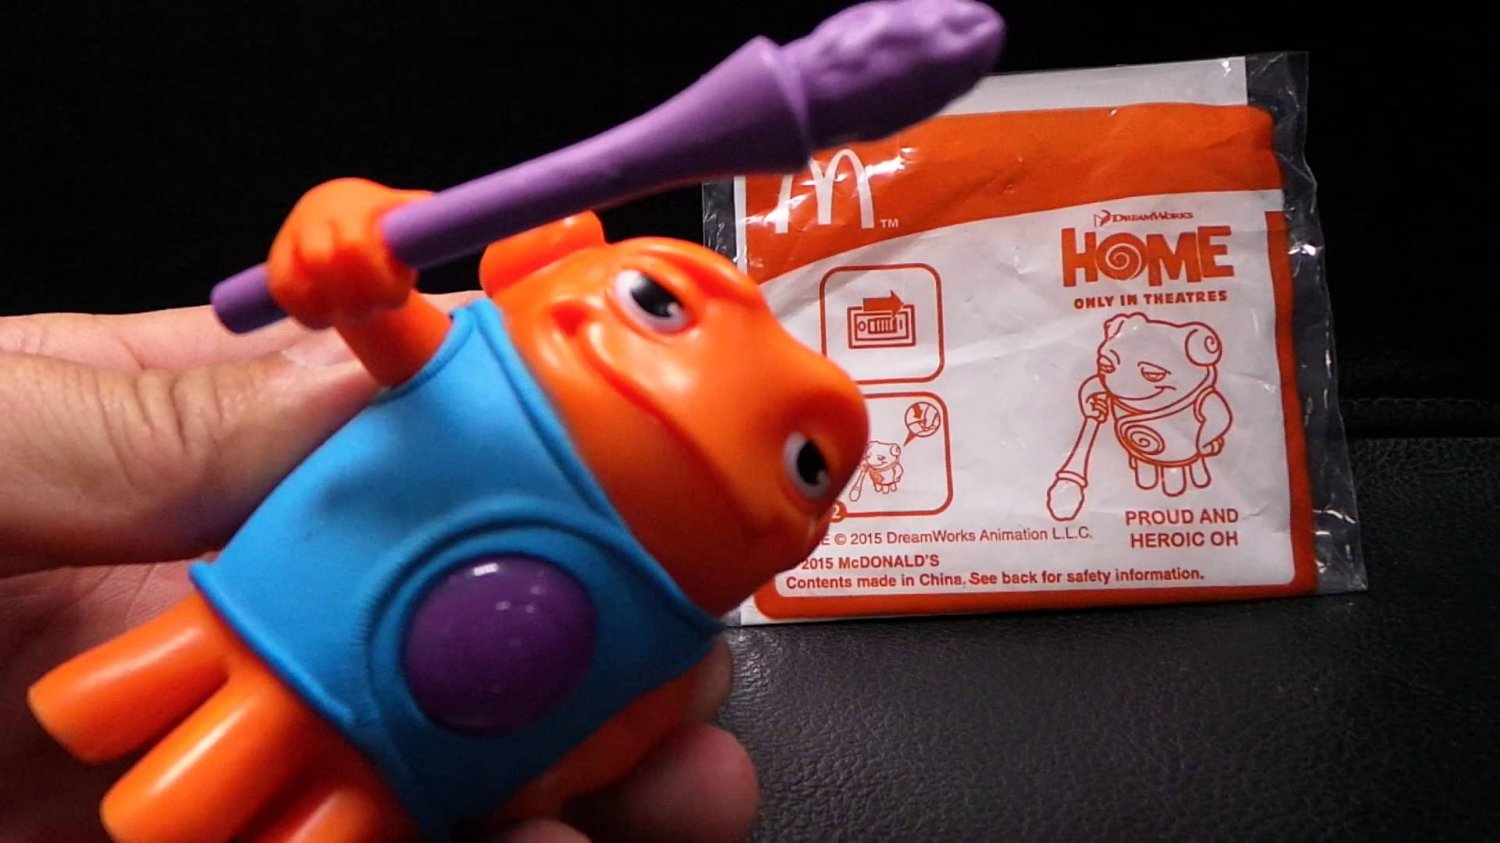 HK McDonald's Happy Meal Toy:2015 DREAMWORKS- HOME PROUD AND HEROIC OH